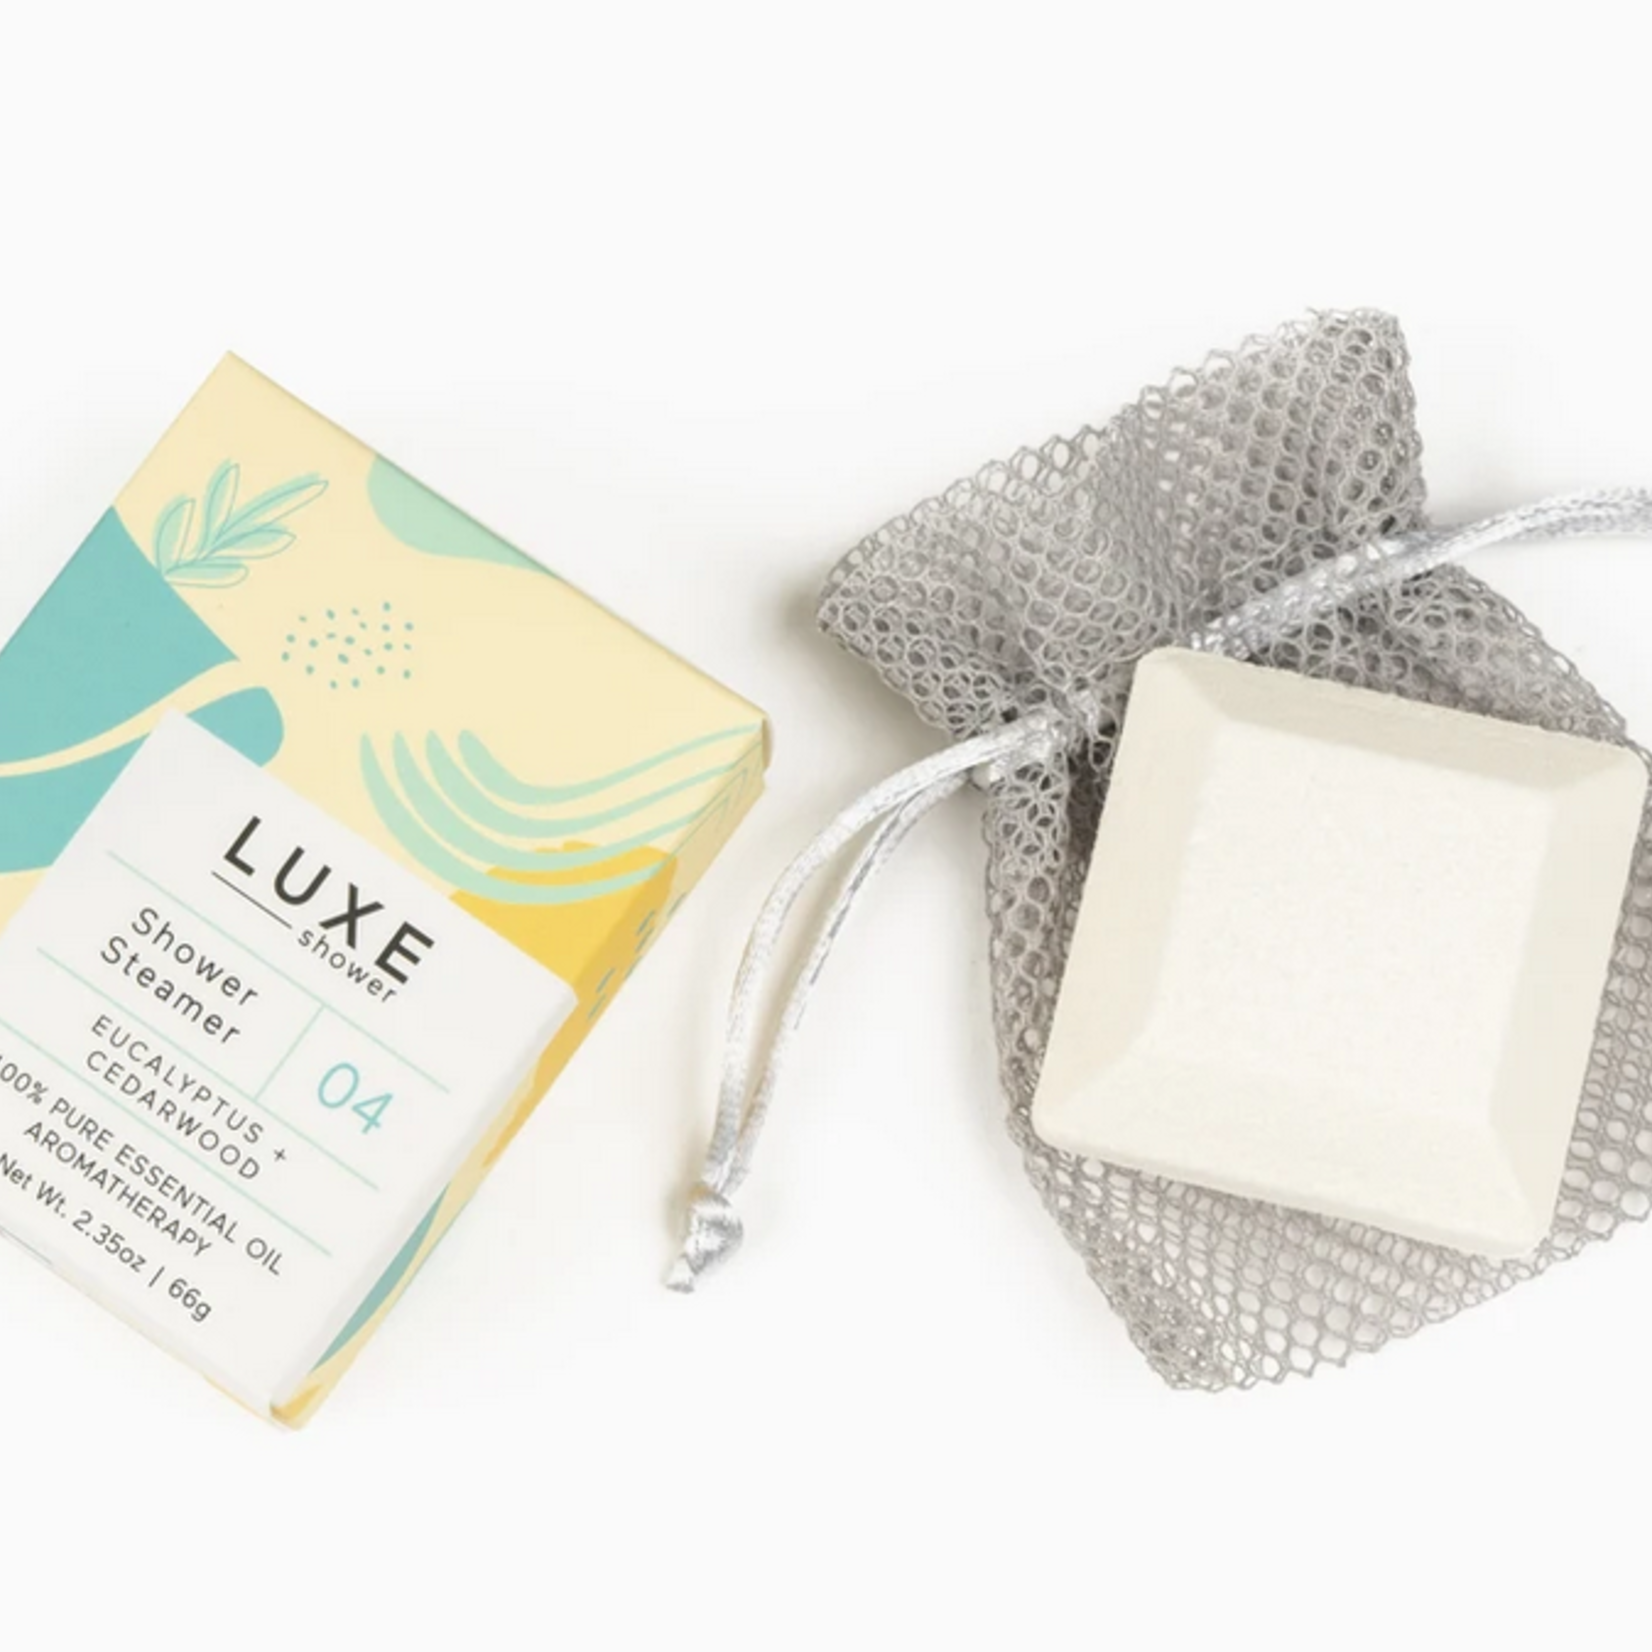 Cait + Co Luxe Shower Steamer Fizzy Bombs